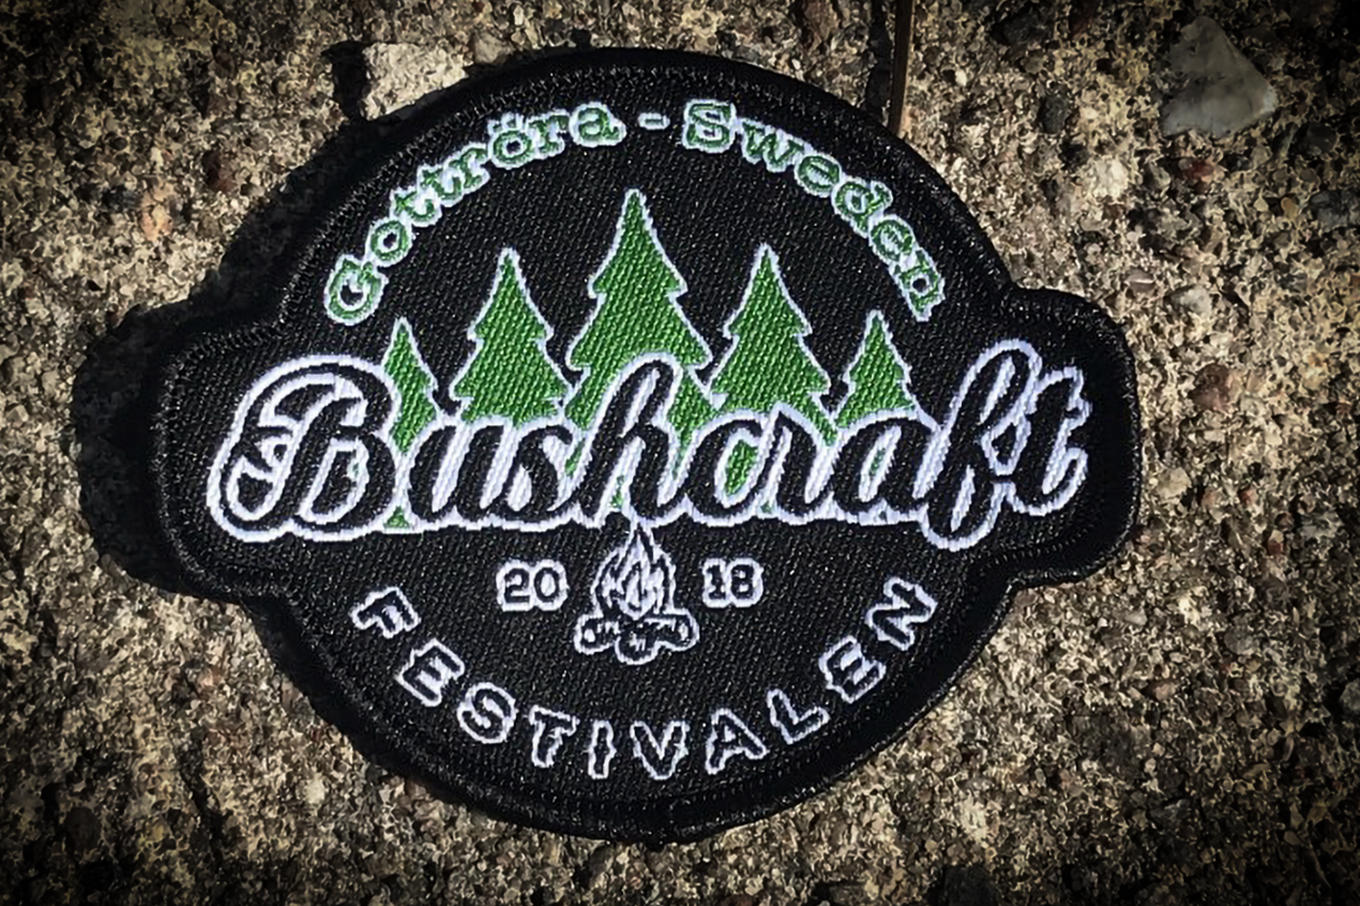 Bushcraftfestivalen 2018 badge